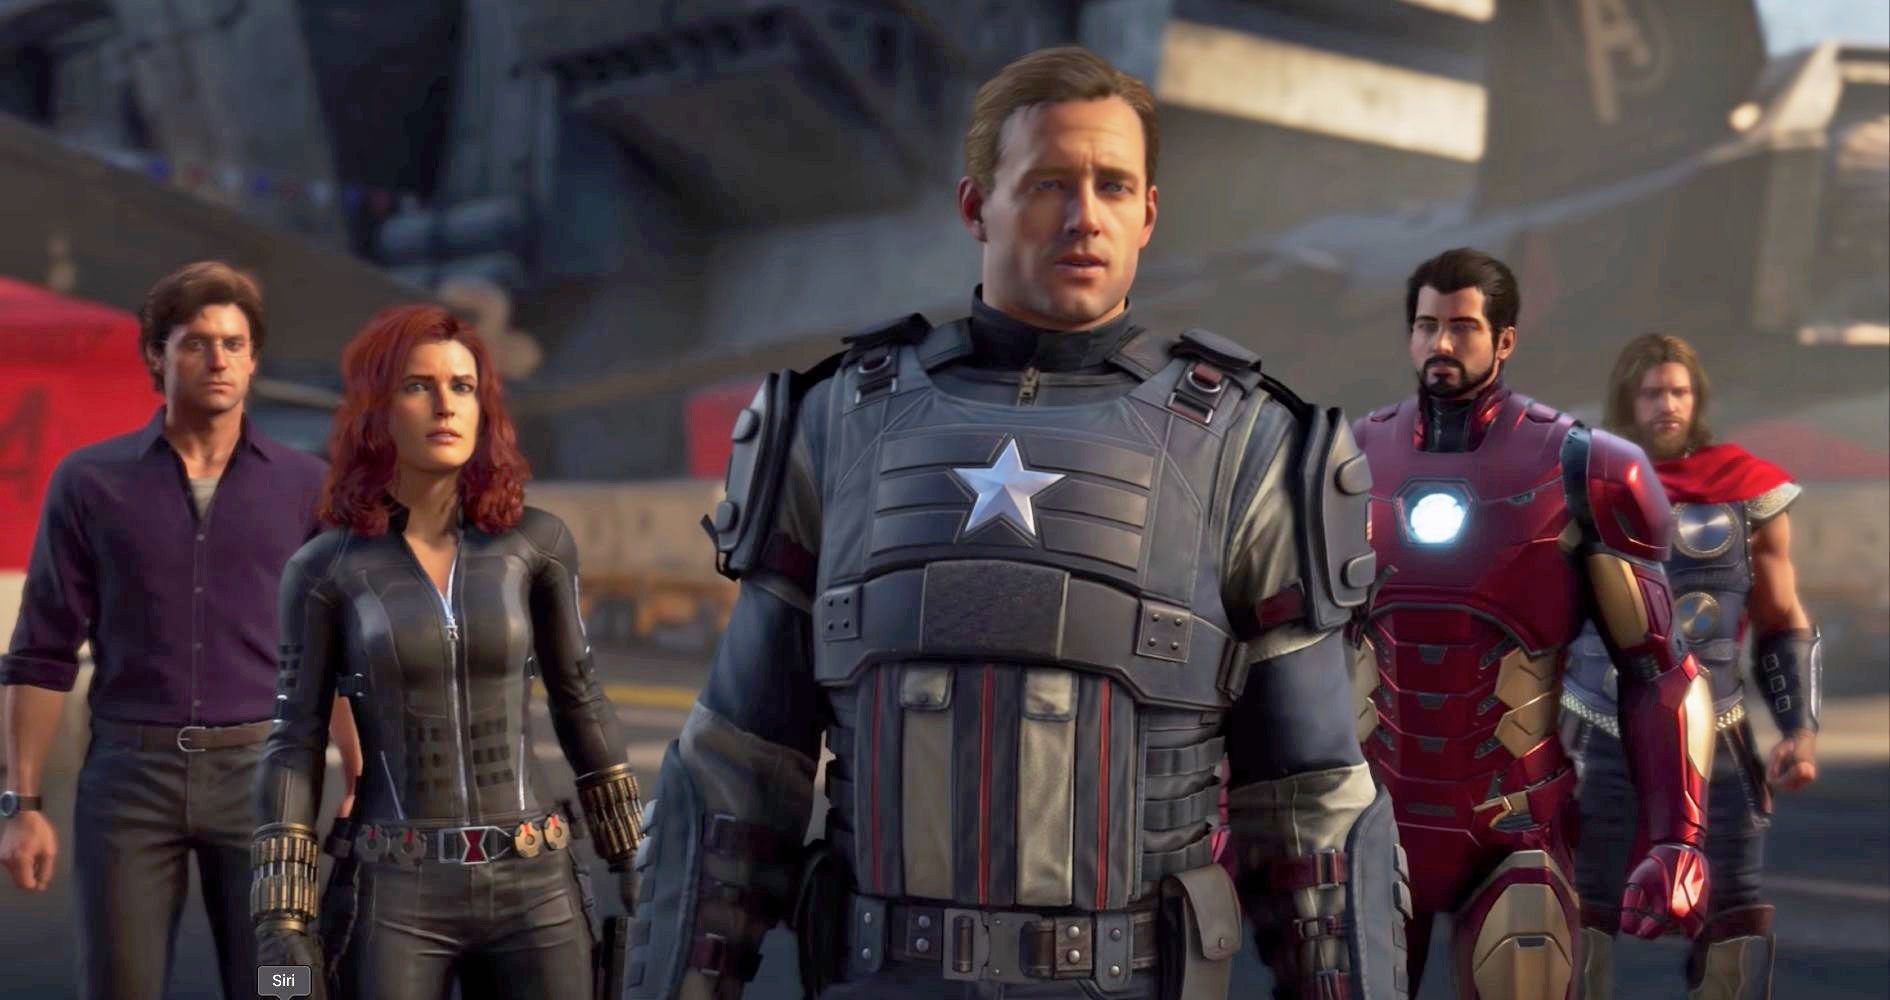 Marvel's Avengers Character Designs Won't Change After Backlash From E3 2019 Reveal